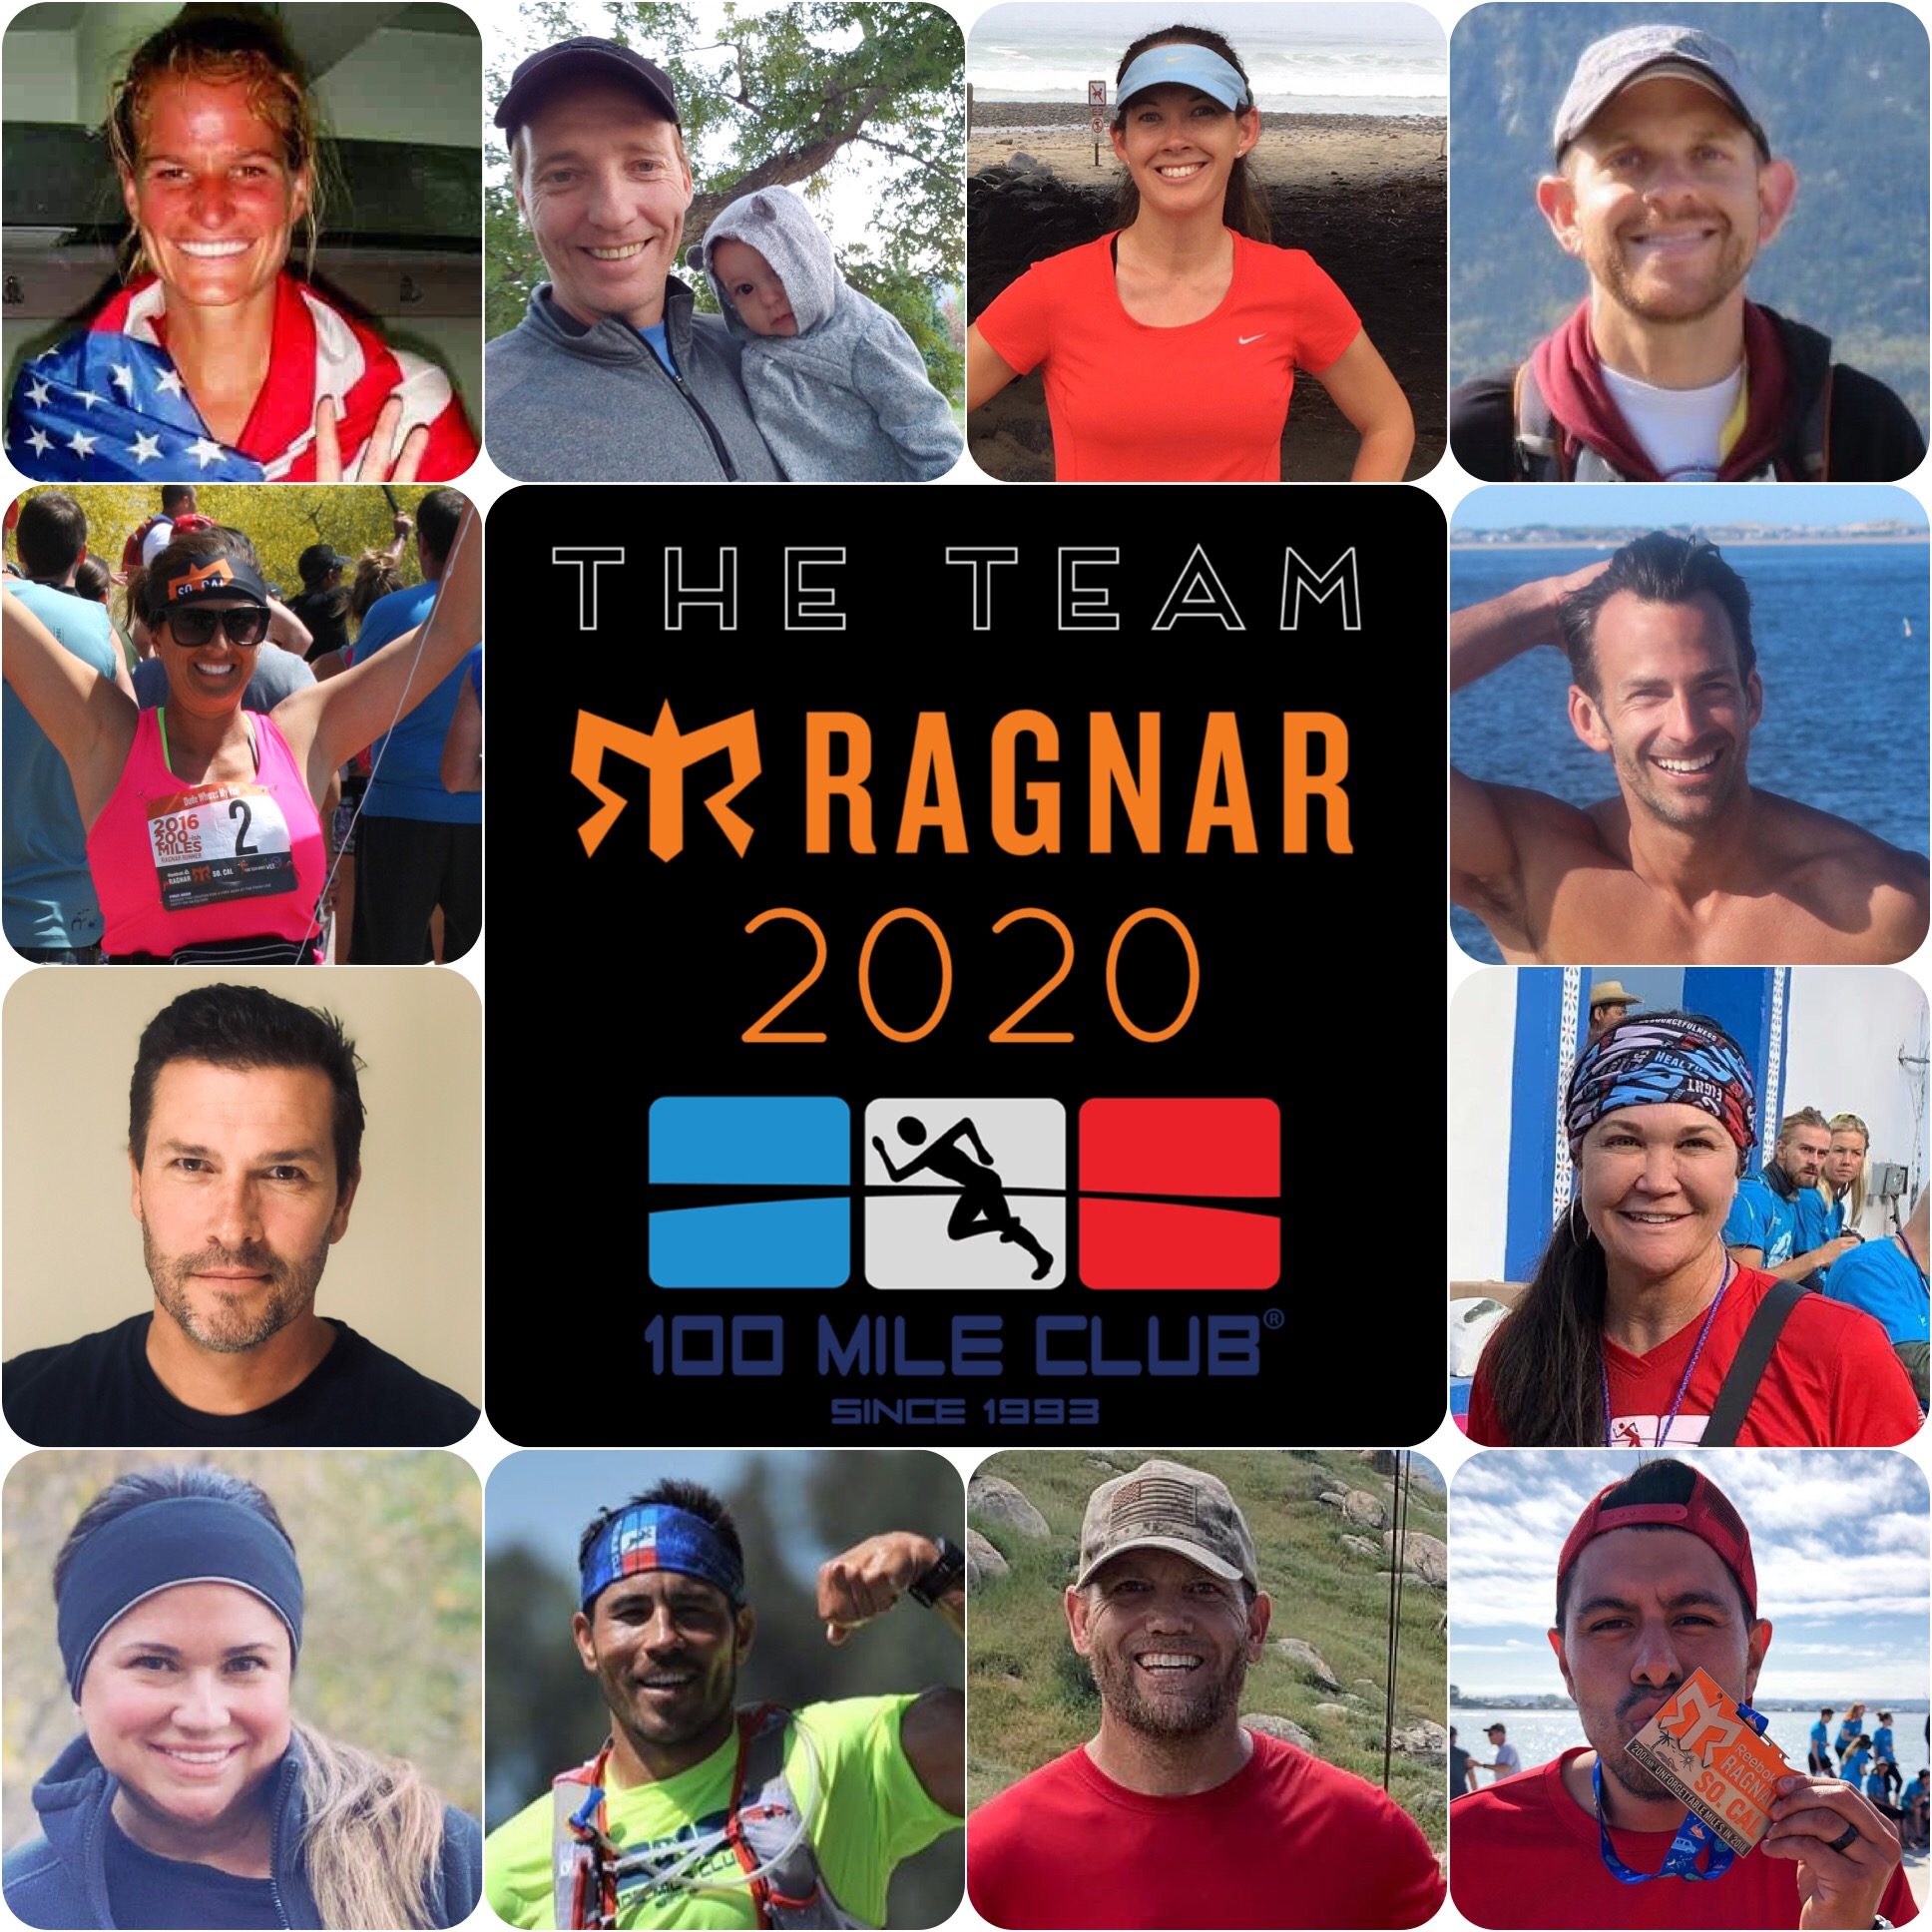 Introducing Team 100 Mile Club | Ragnar SoCal 2020